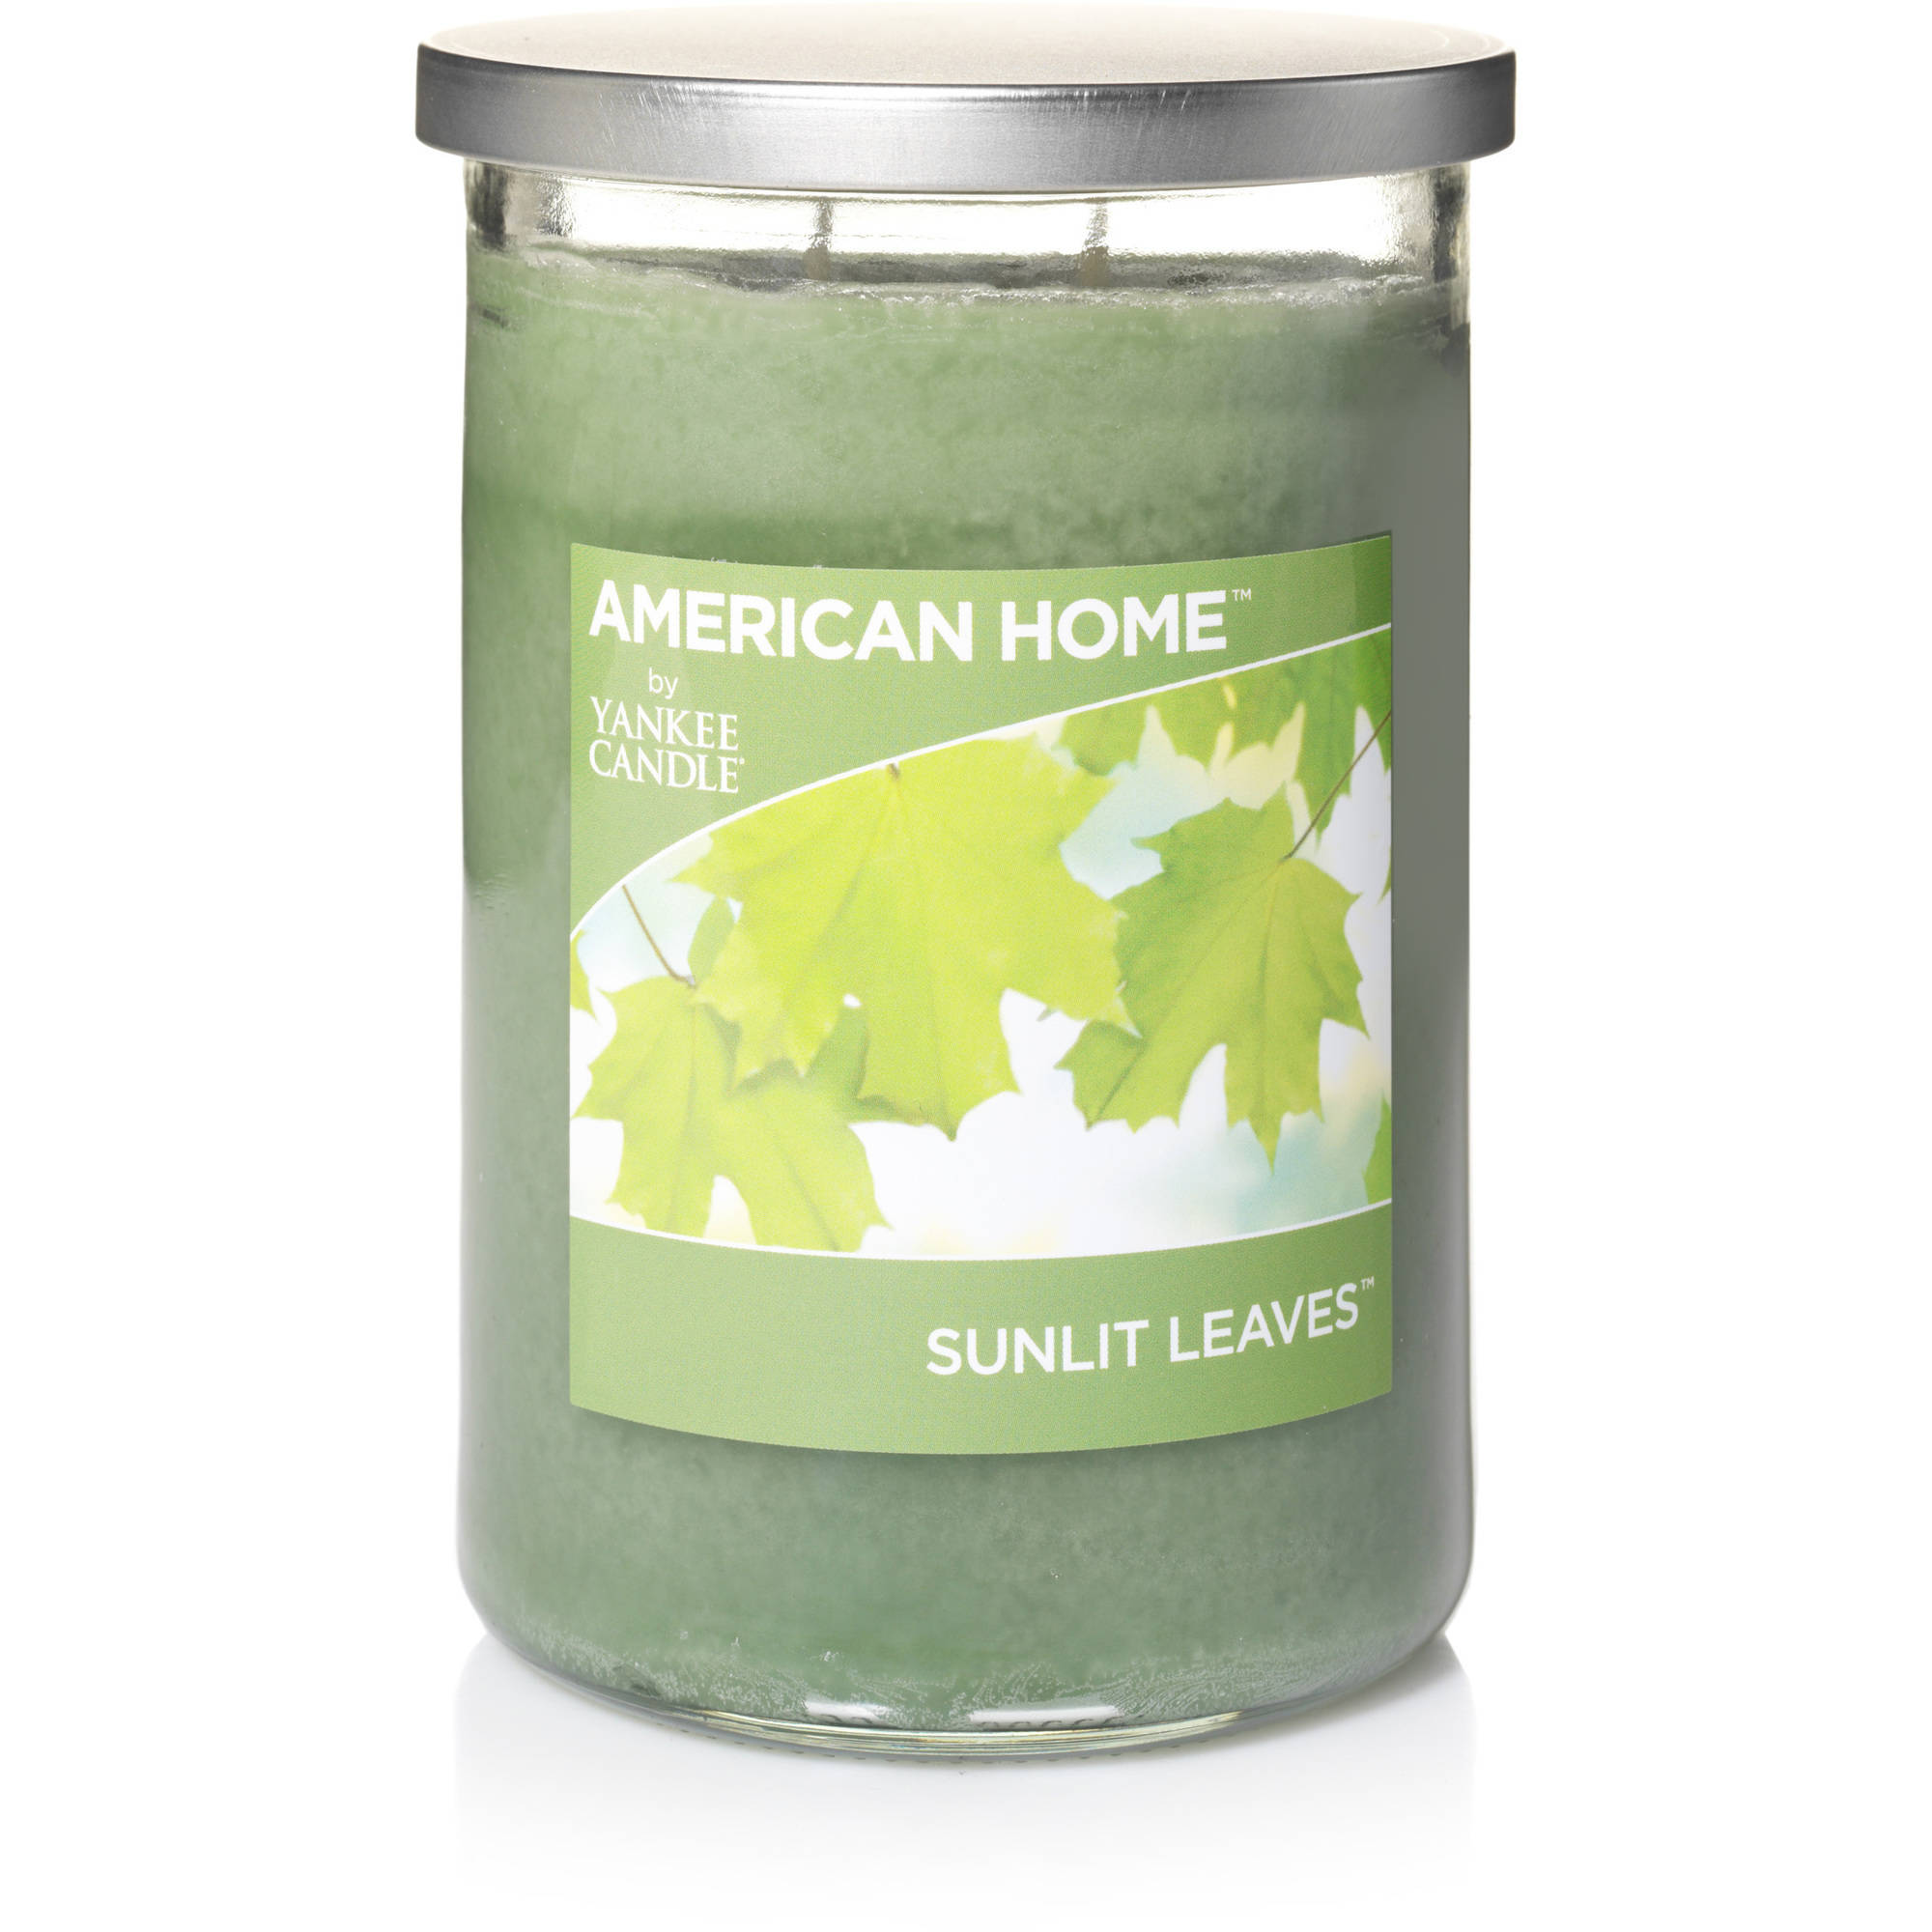 Generic American Home by Yankee Candle Sunlit Leaves, 19 oz Large 2 - Wick Tumbler Candle